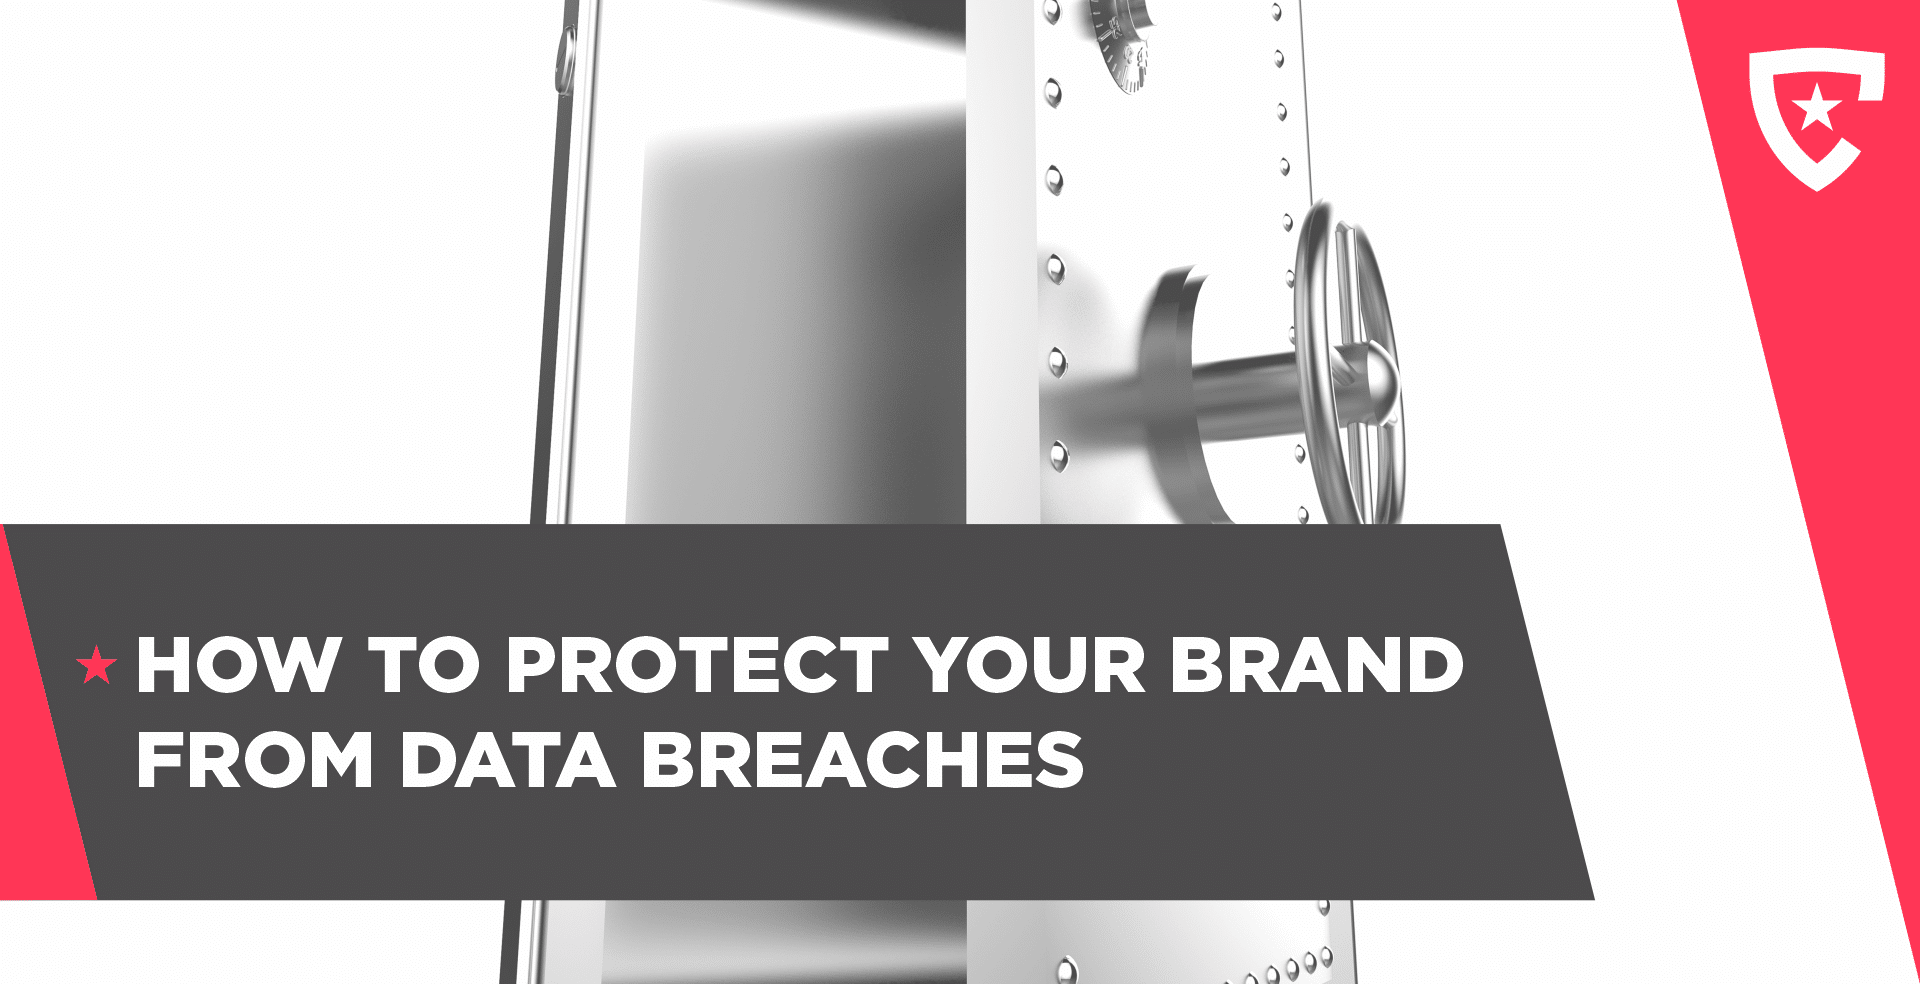 How To Protect Your Brand from Data Breaches